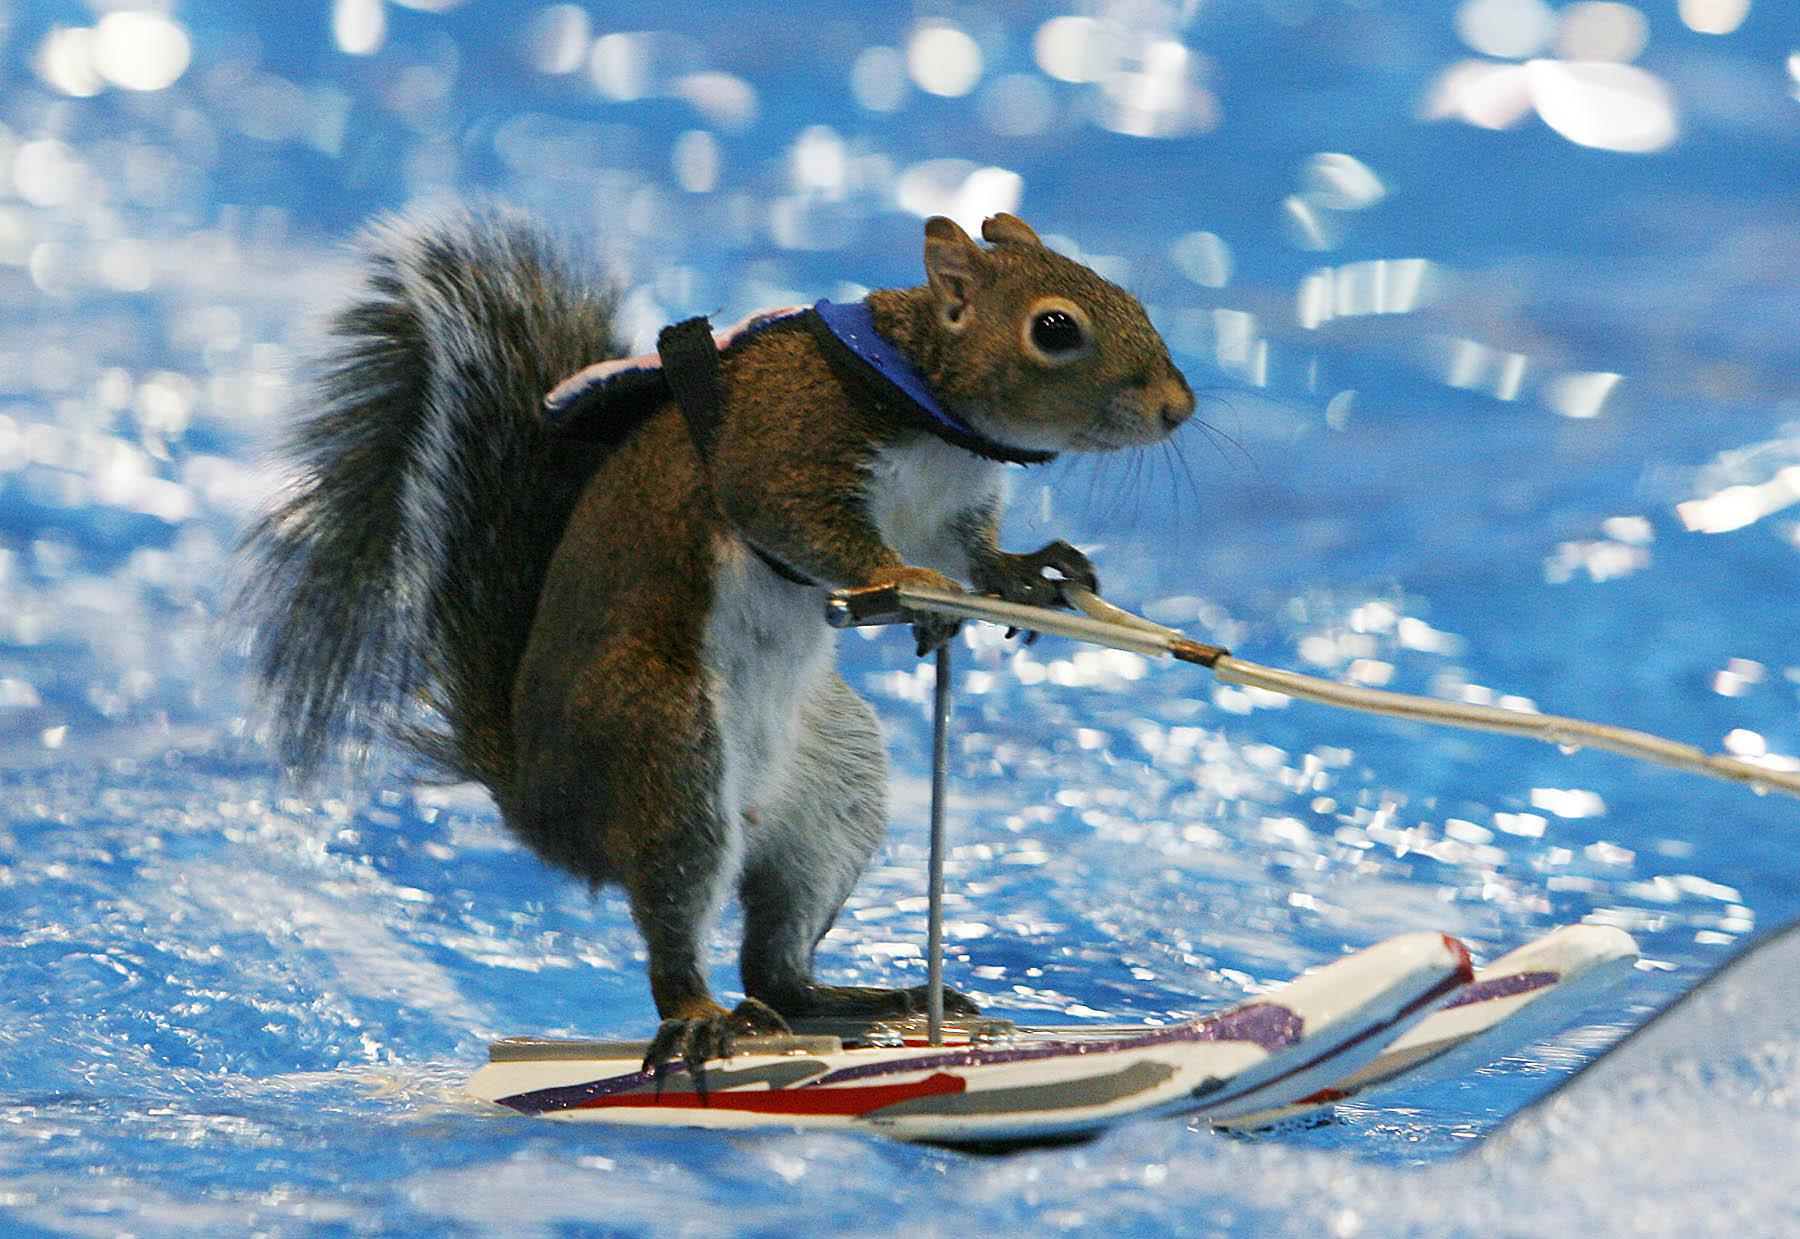 S.A.'s Common Critters: Squirrels - all about these sly clowns